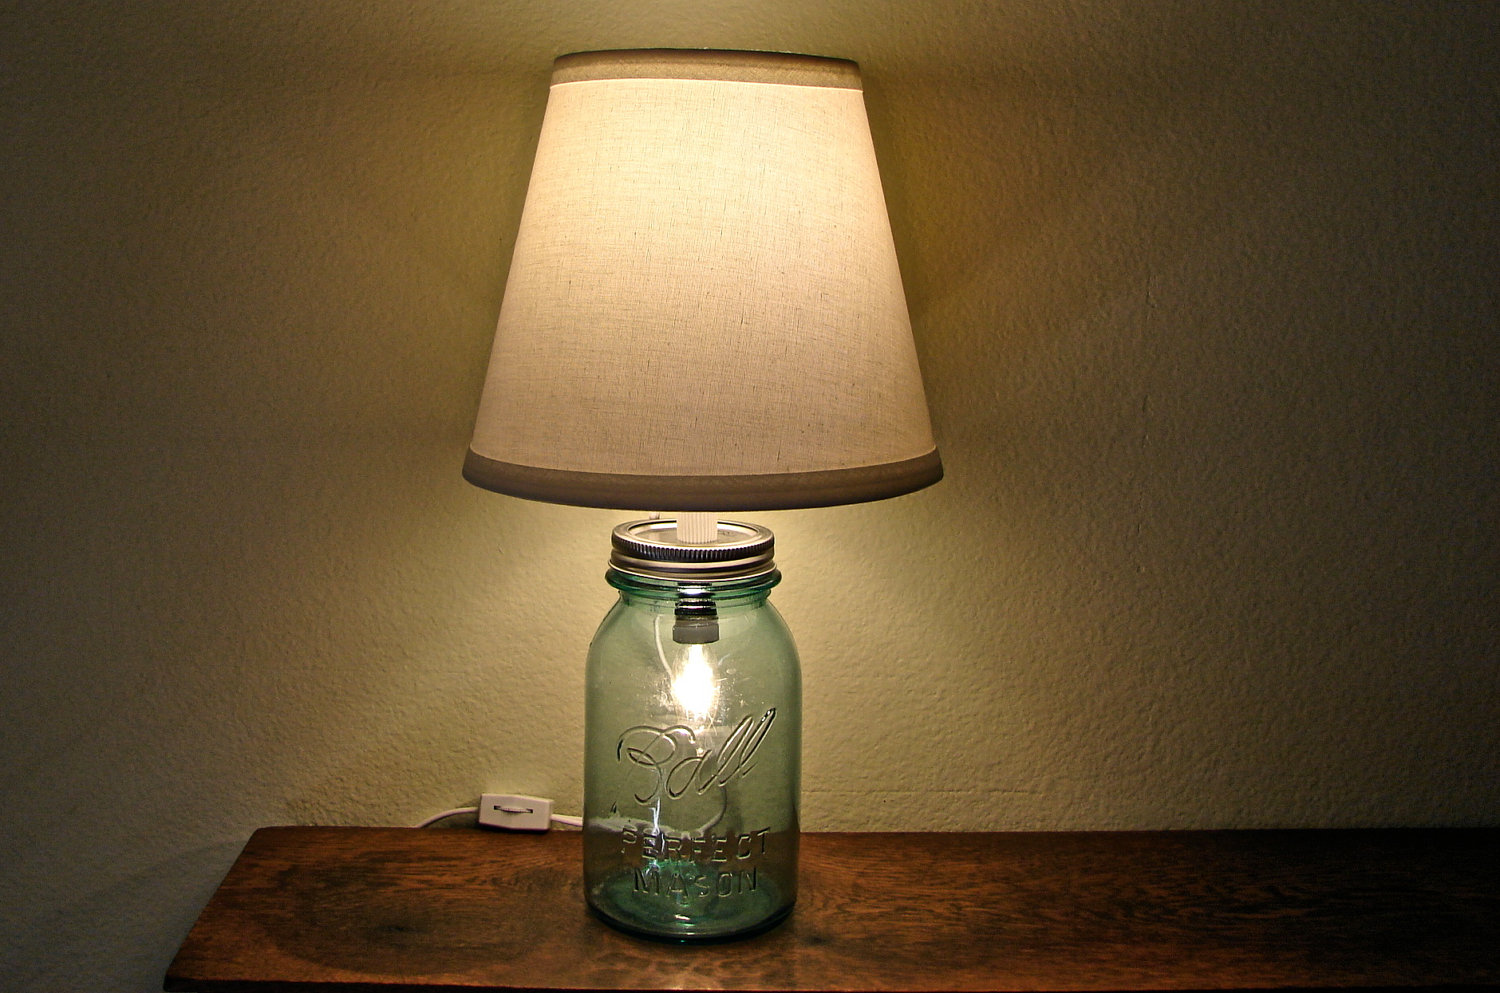 10 factors to consider before buying jar lamps warisan lighting 10 factors to consider before buying jar lamps geotapseo Image collections